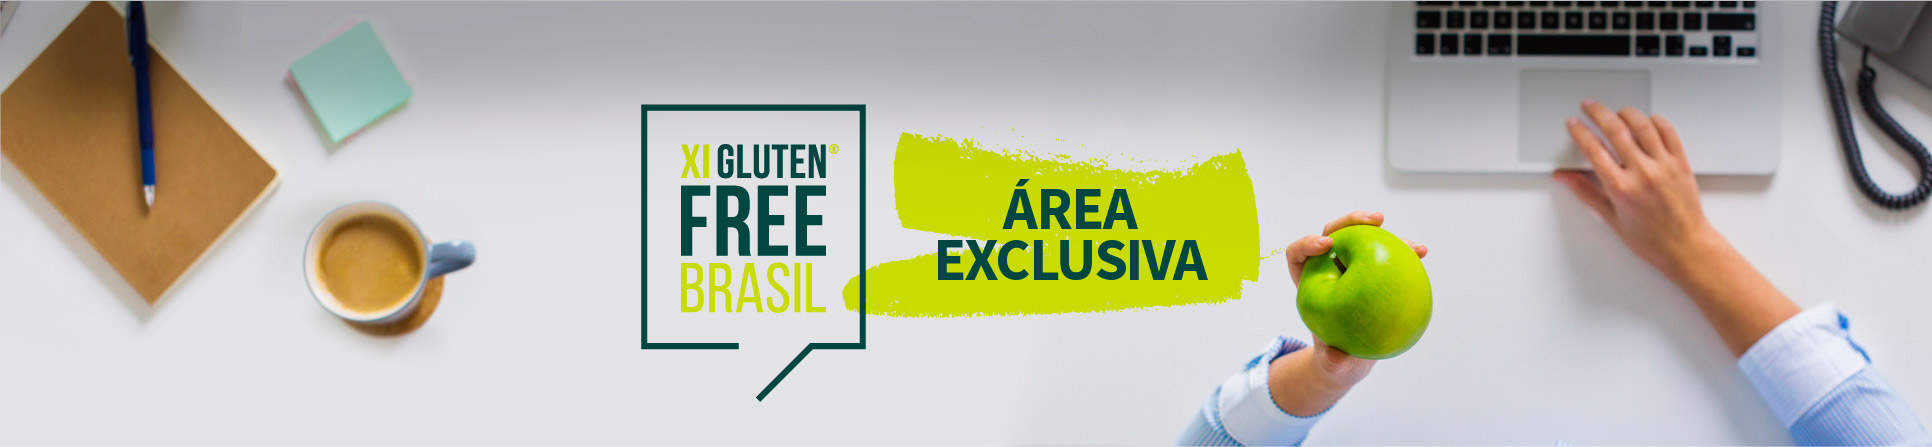 Área exclusiva gluten free